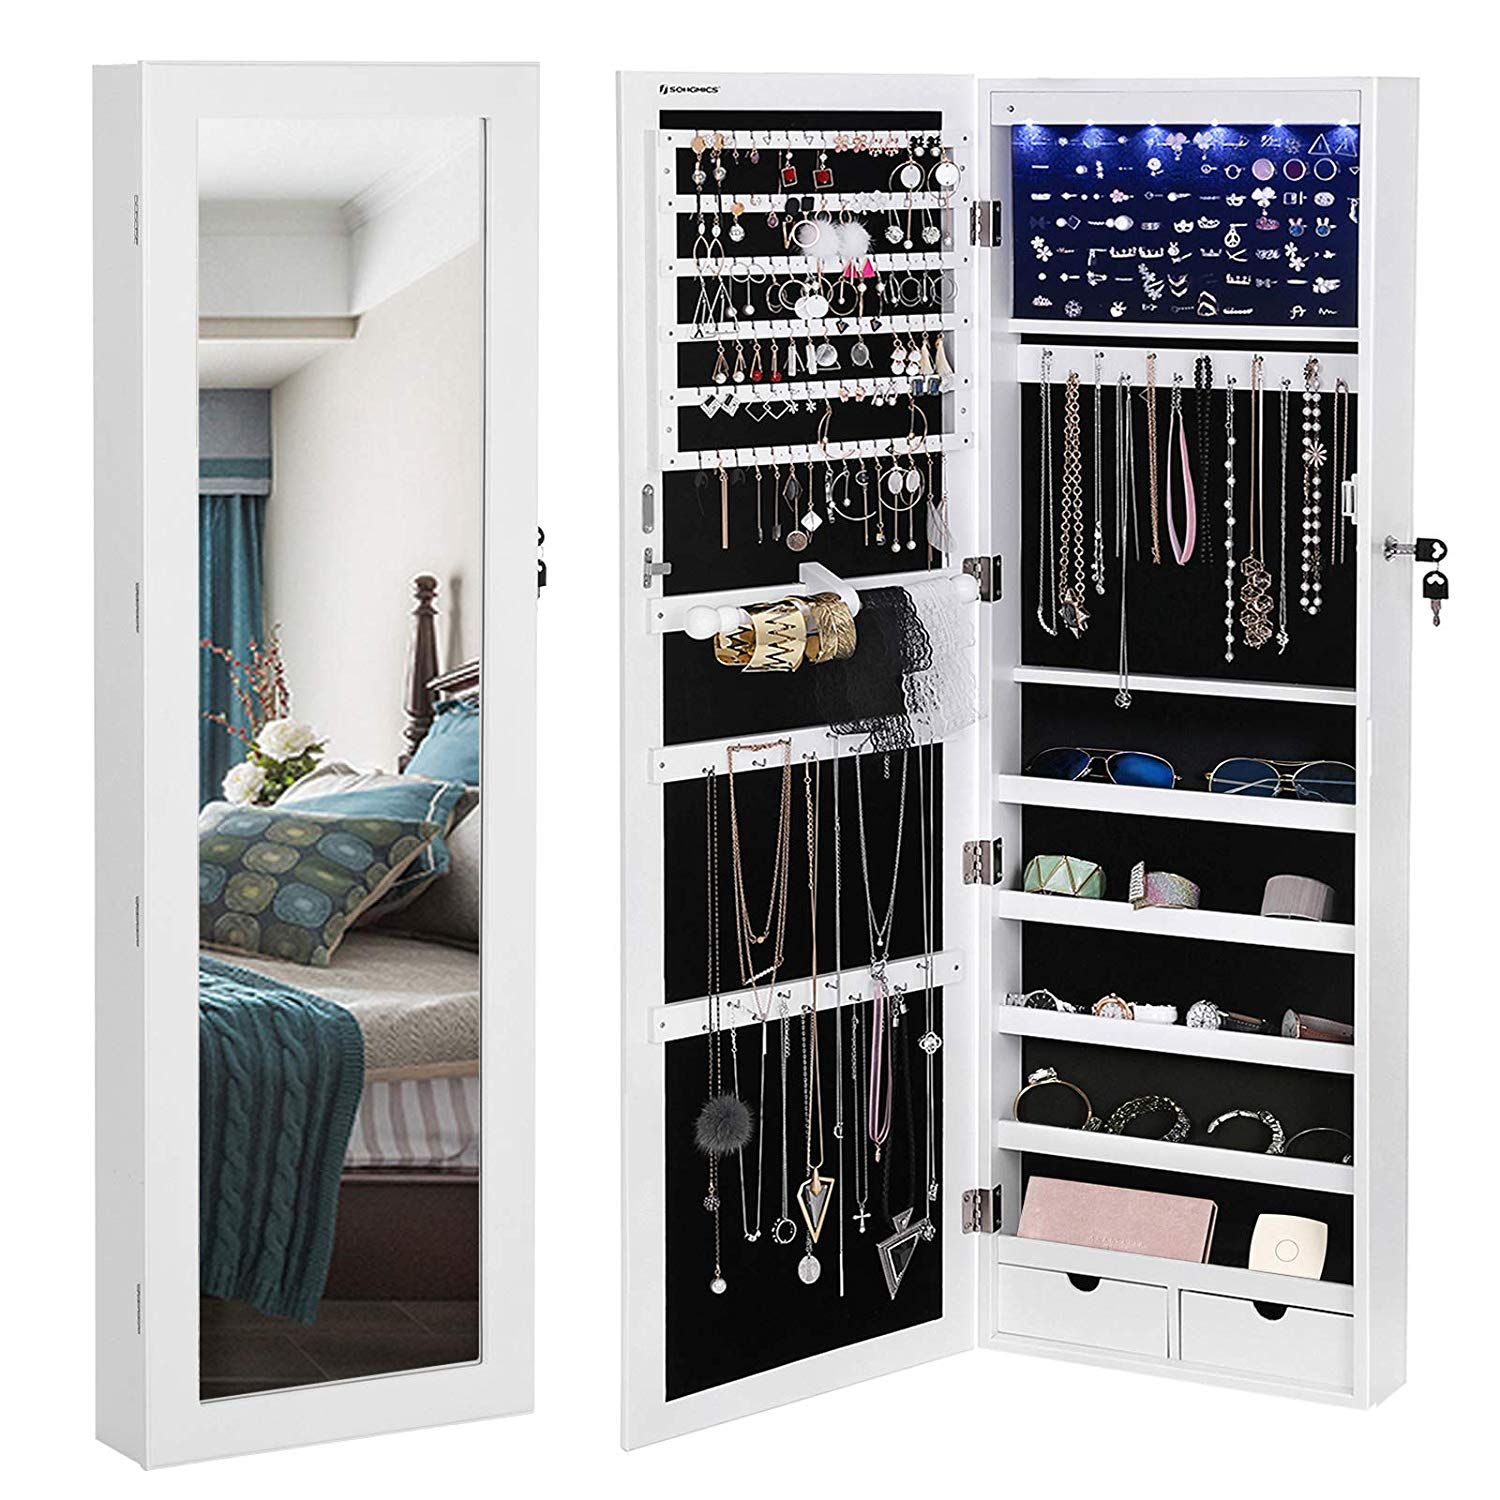 Mounted Jewelry Armoire Organizer with Mirror